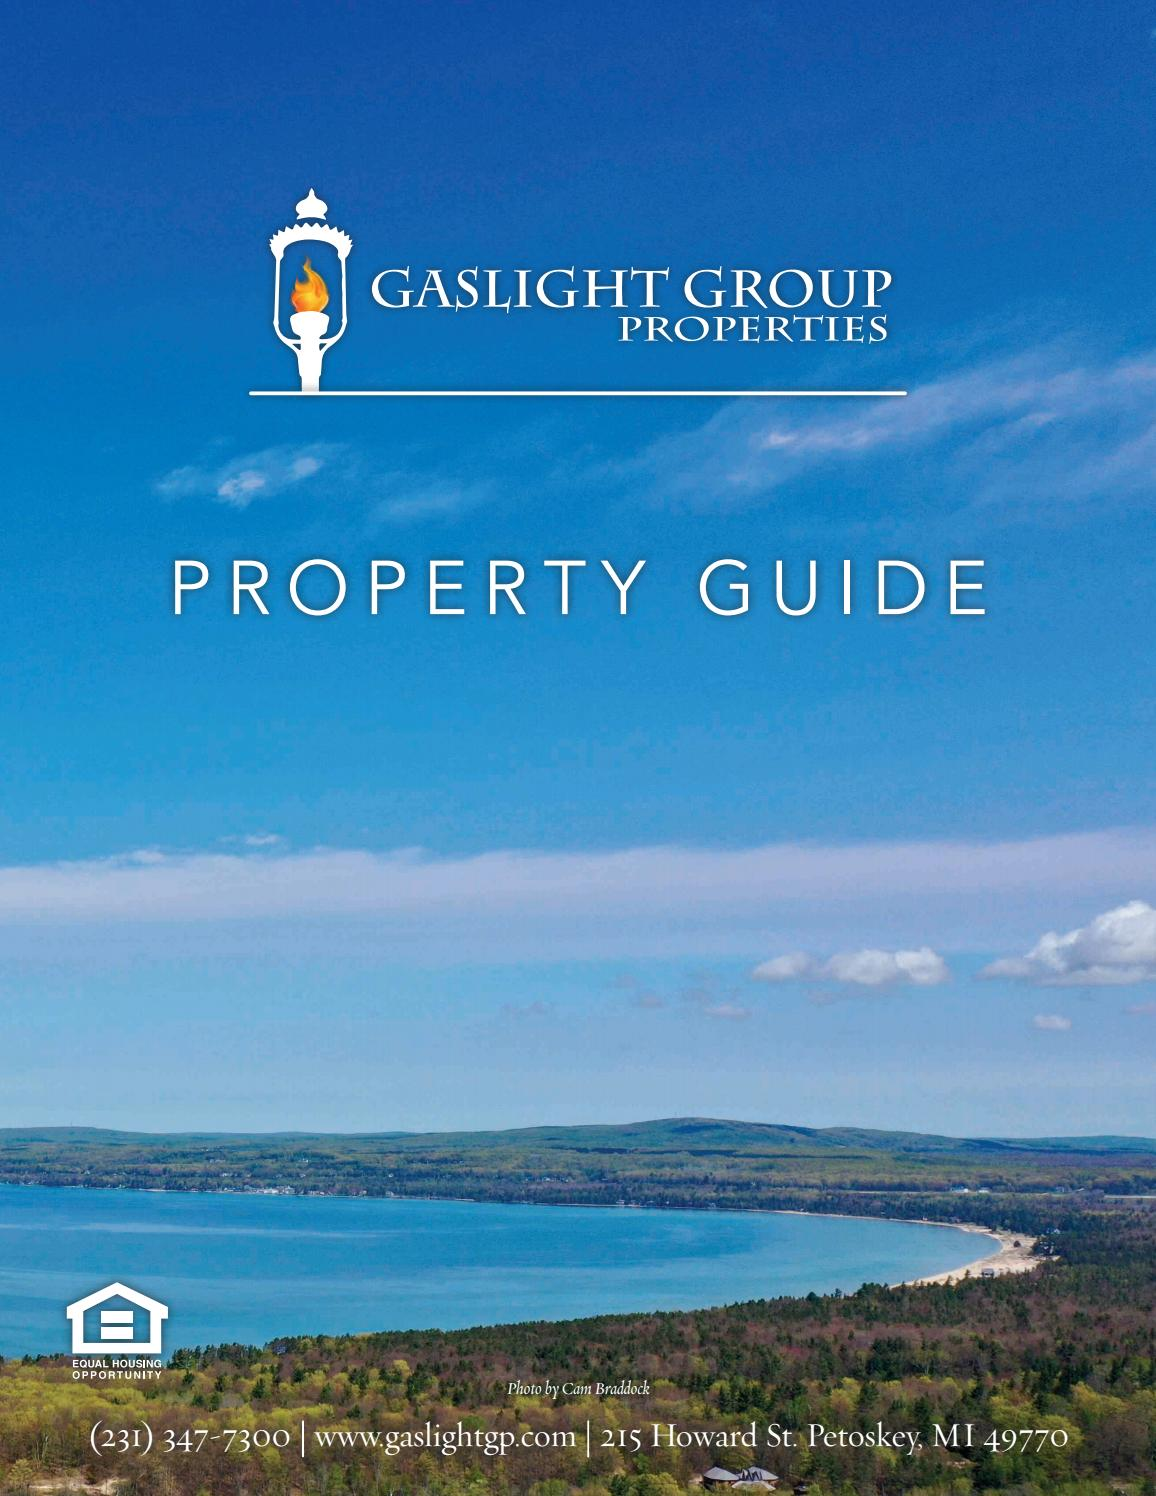 Gaslight Group Property Guide 2019 by Mitchell Graphics - issuu